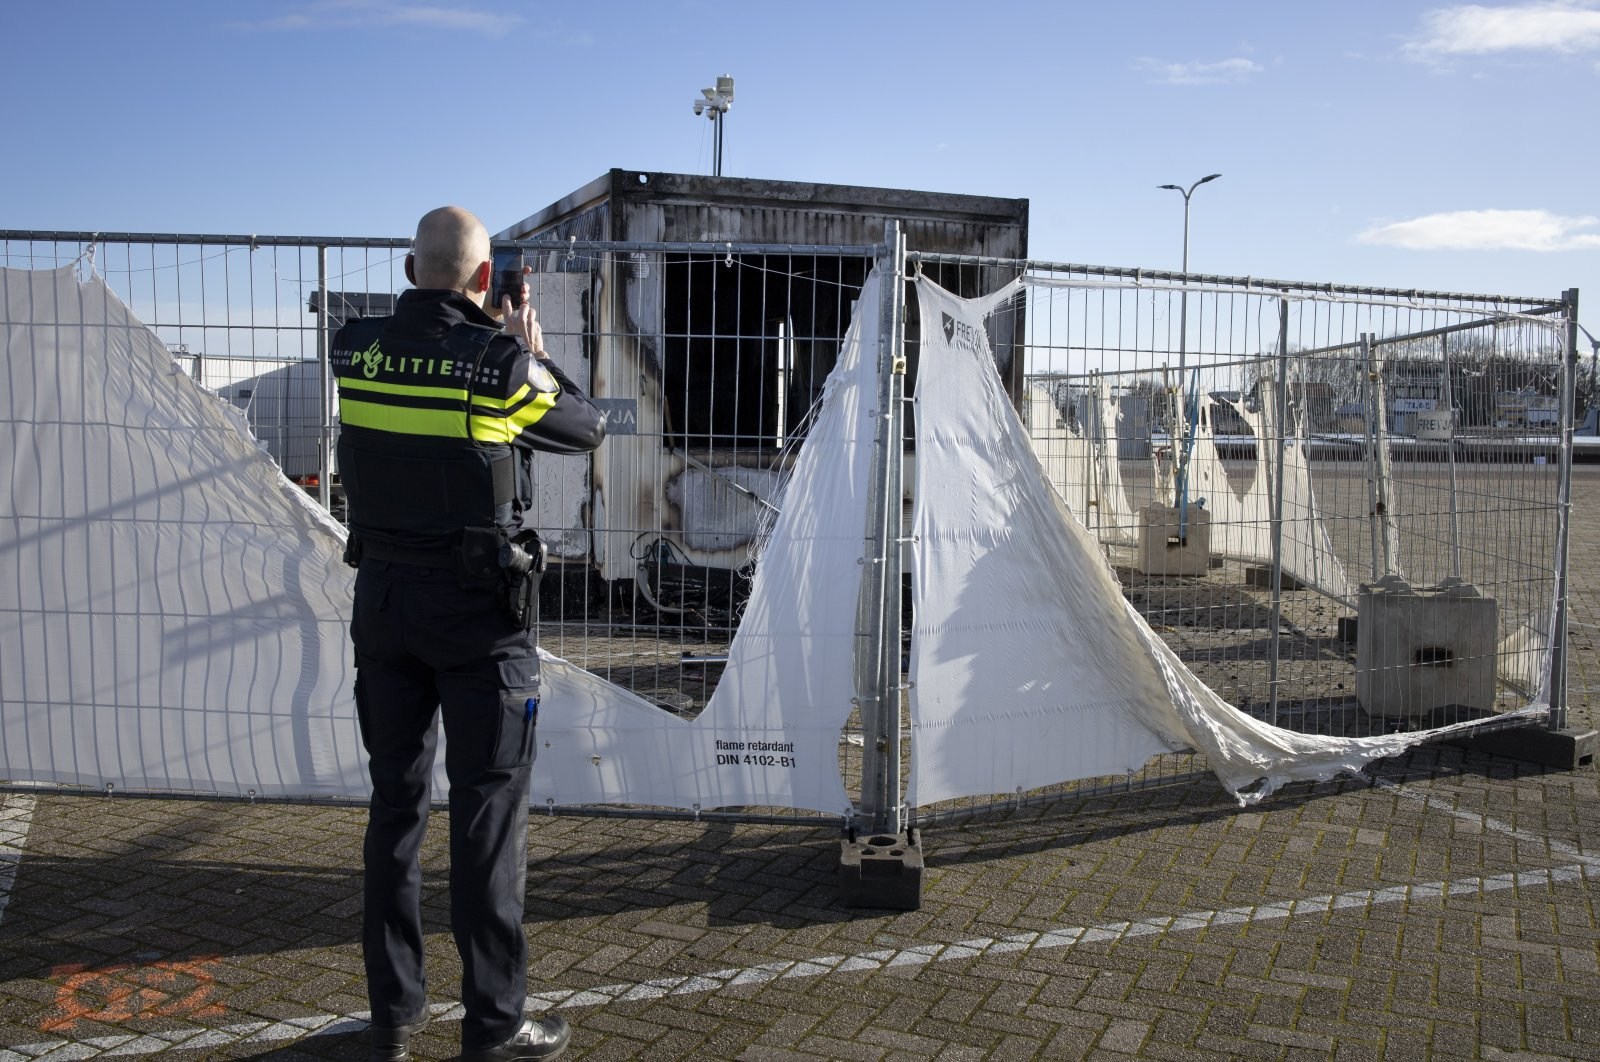 A police officer takes pictures of a destroyed COVID-19 testing facility in the fishing village of Urk in the Netherlands after it was set on fire the night before by rioting youths protesting on the first night of a nationwide curfew, Jan. 24, 2021. (AP Photo)